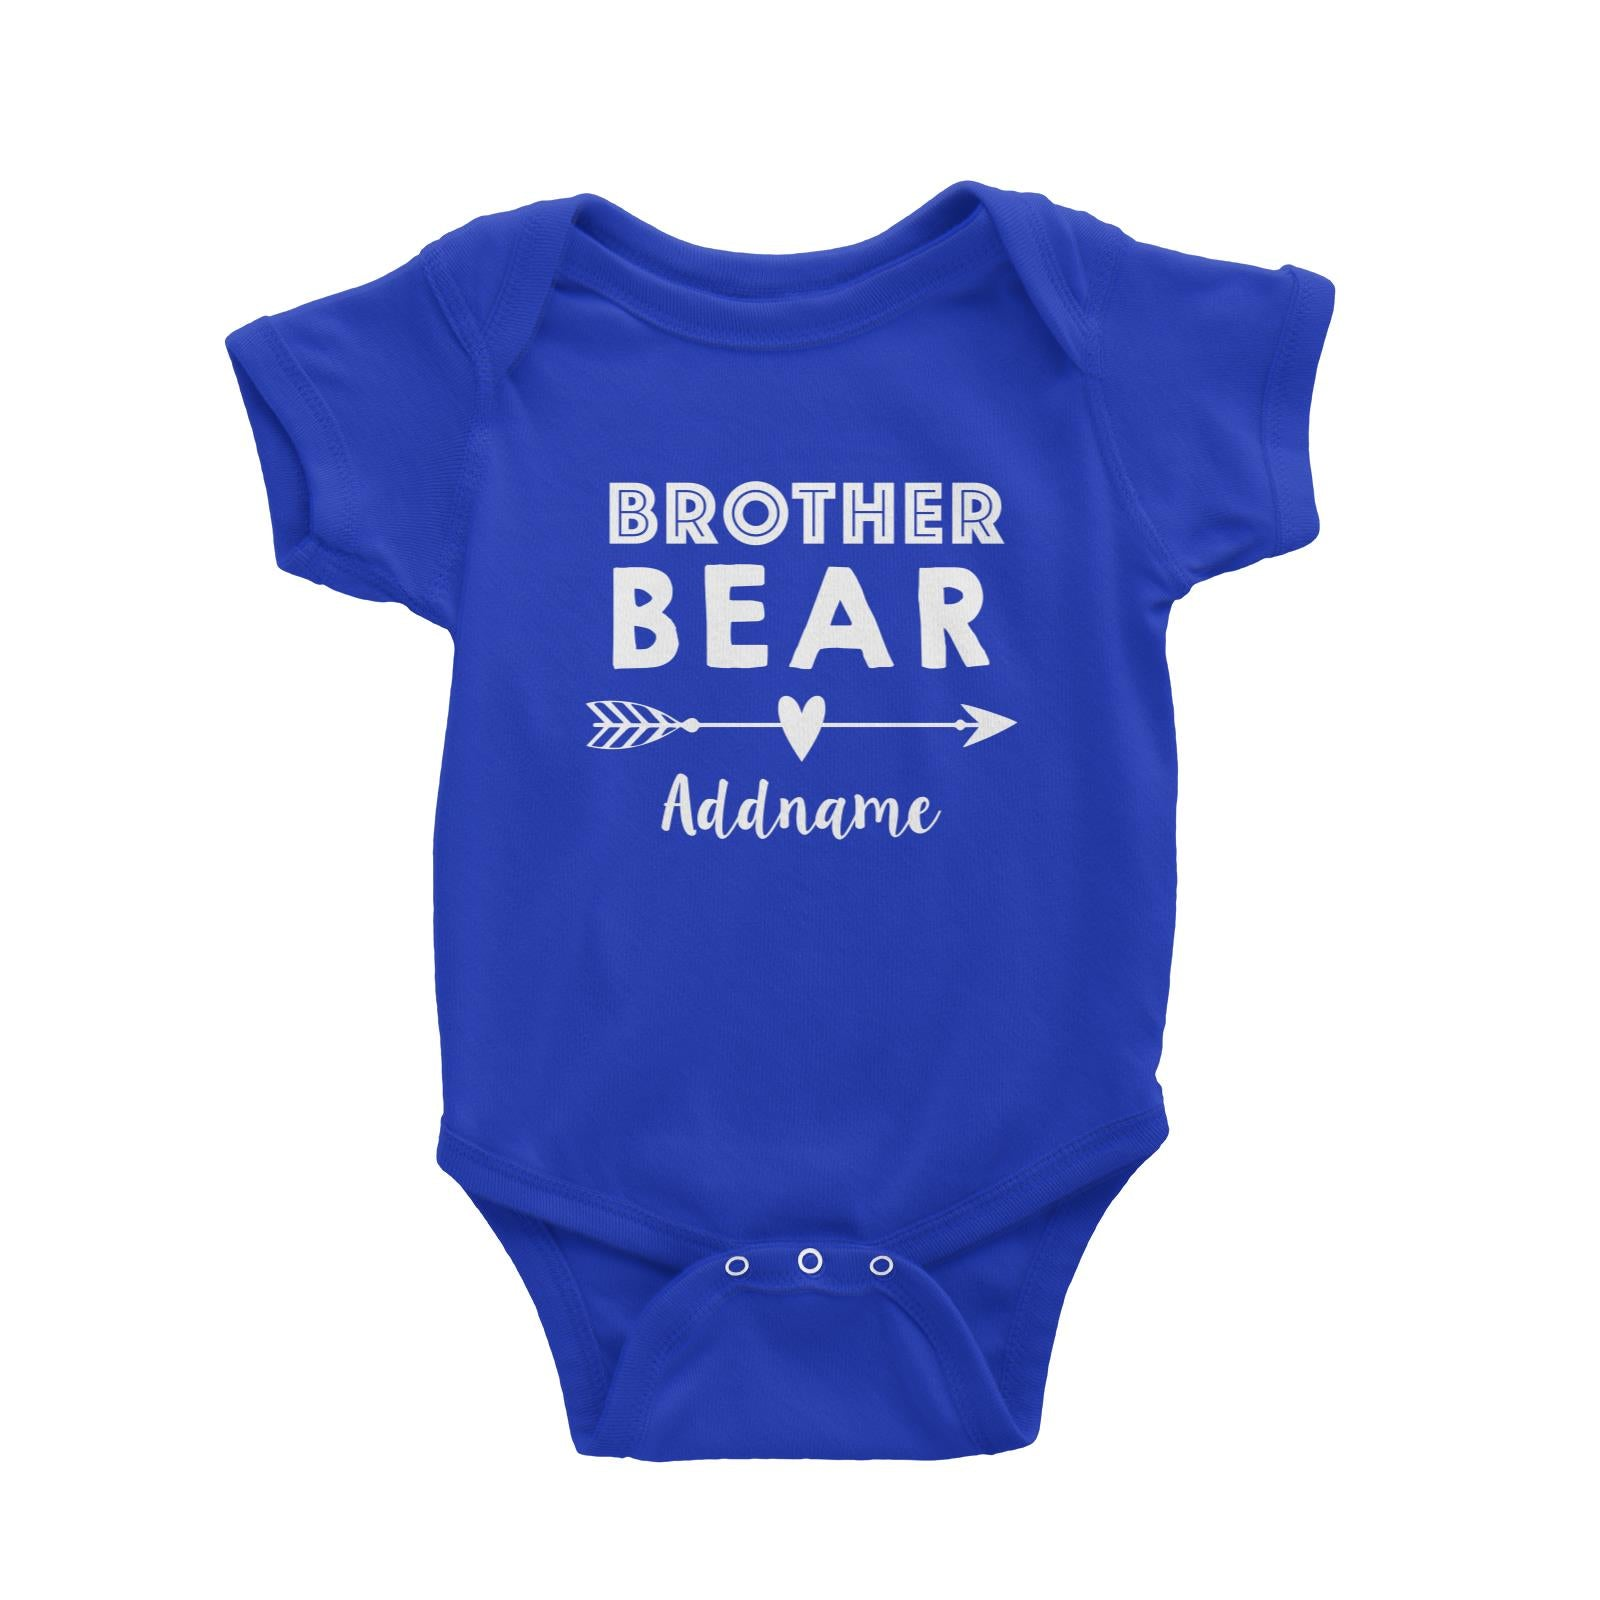 Brother Bear Addname Baby Romper  Matching Family Personalizable Designs